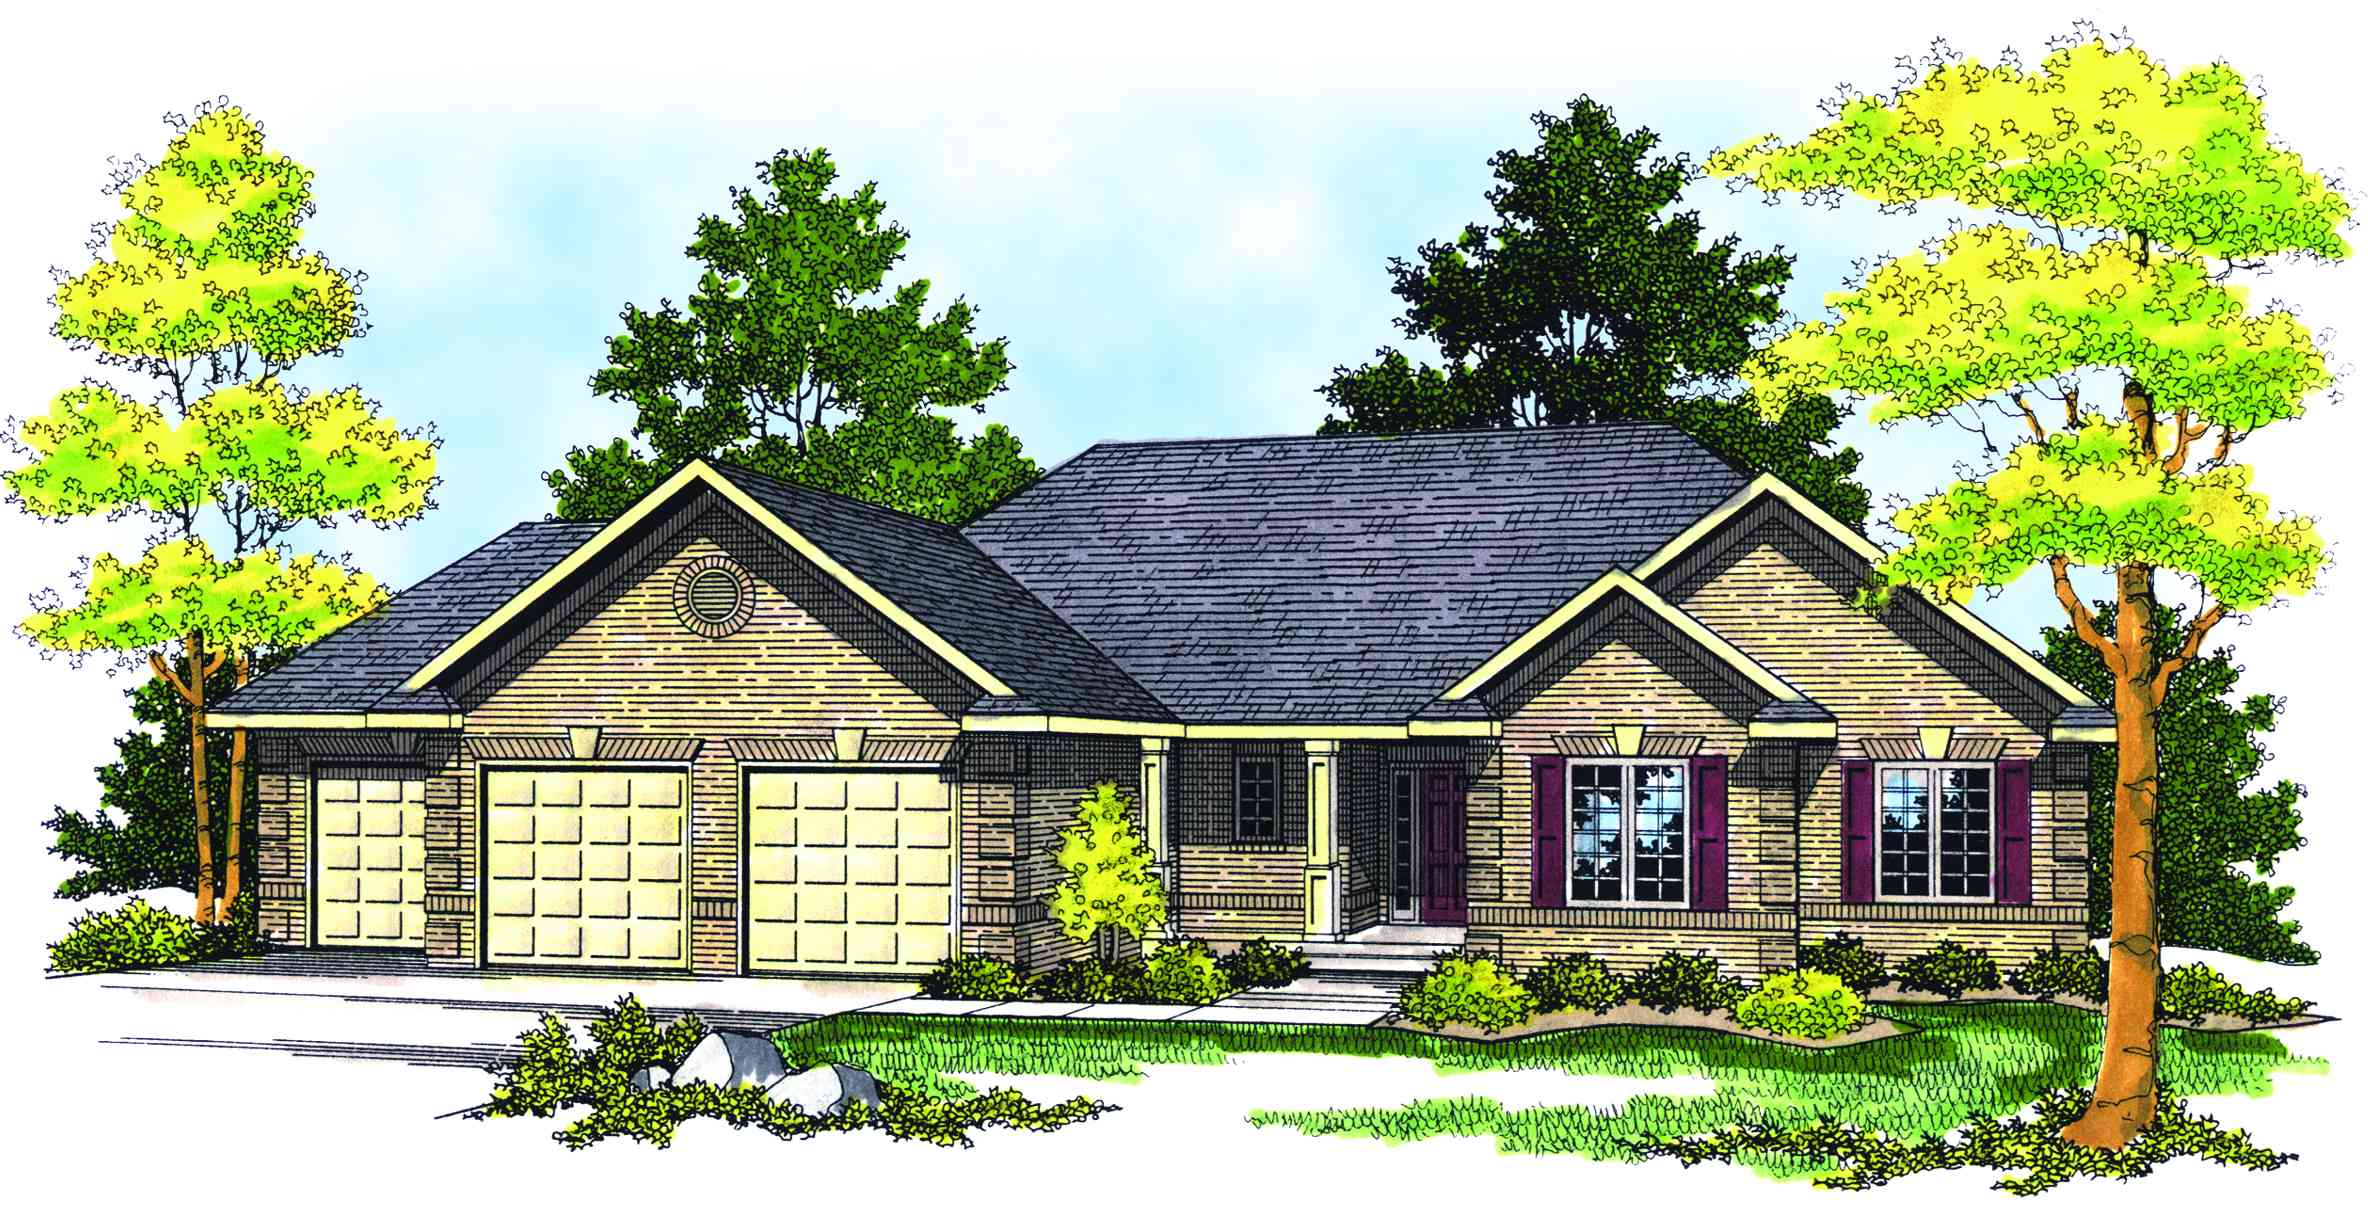 89130ah_1479212612 New Ranch Style Home Plans on new prairie style homes, new ranch home ideas, new ranch style house, new 4 bedroom home plans, brick ranch style house plans, new country home plans, open ranch style house plans, new split level home plans, new victorian home plans, luxury ranch home plans, modern ranch style house plans, split bedroom ranch home plans, new style house plans, new brick ranch style homes, brick ranch home plans, new home floor plans, old ranch style house plans, two story ranch style house plans, 5 bedroom ranch house plans, craftsman style ranch house plans,